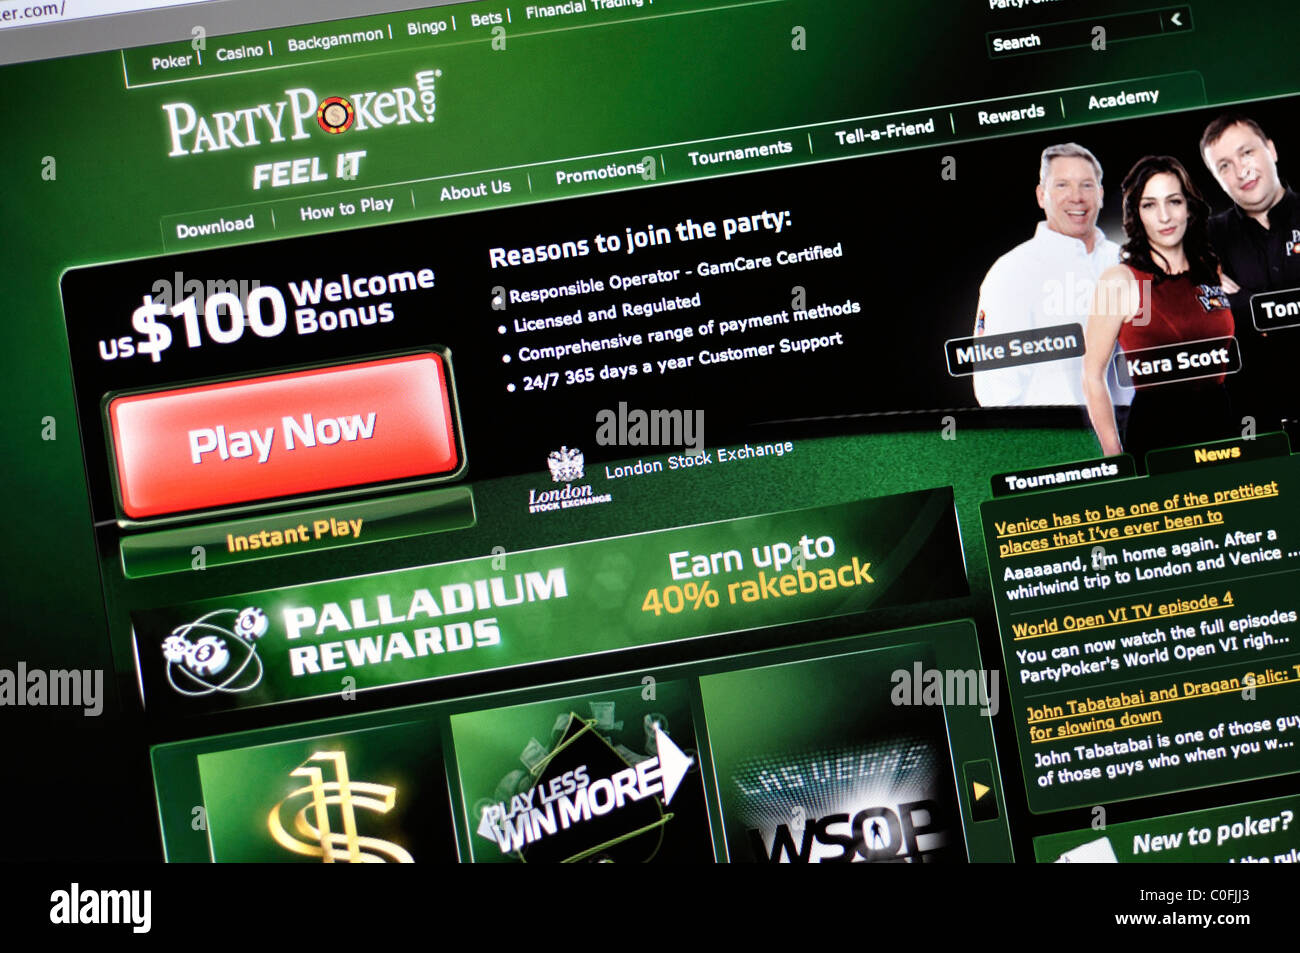 Party Poker website - Stock Image